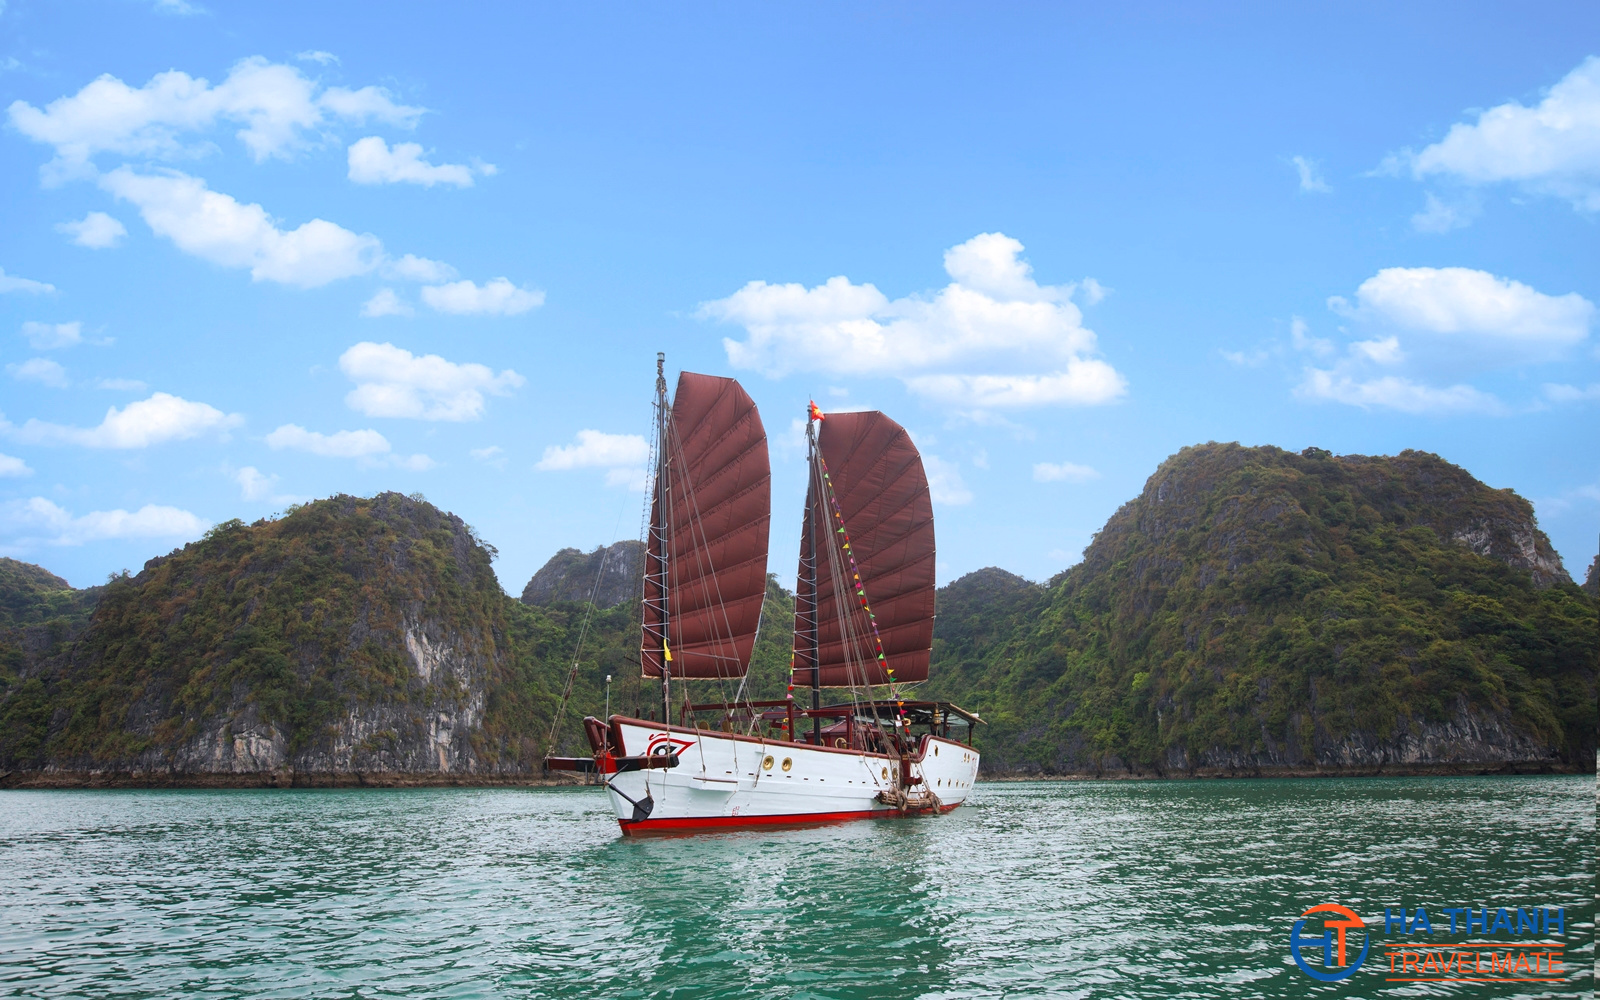 Nang Tien Day Cruise